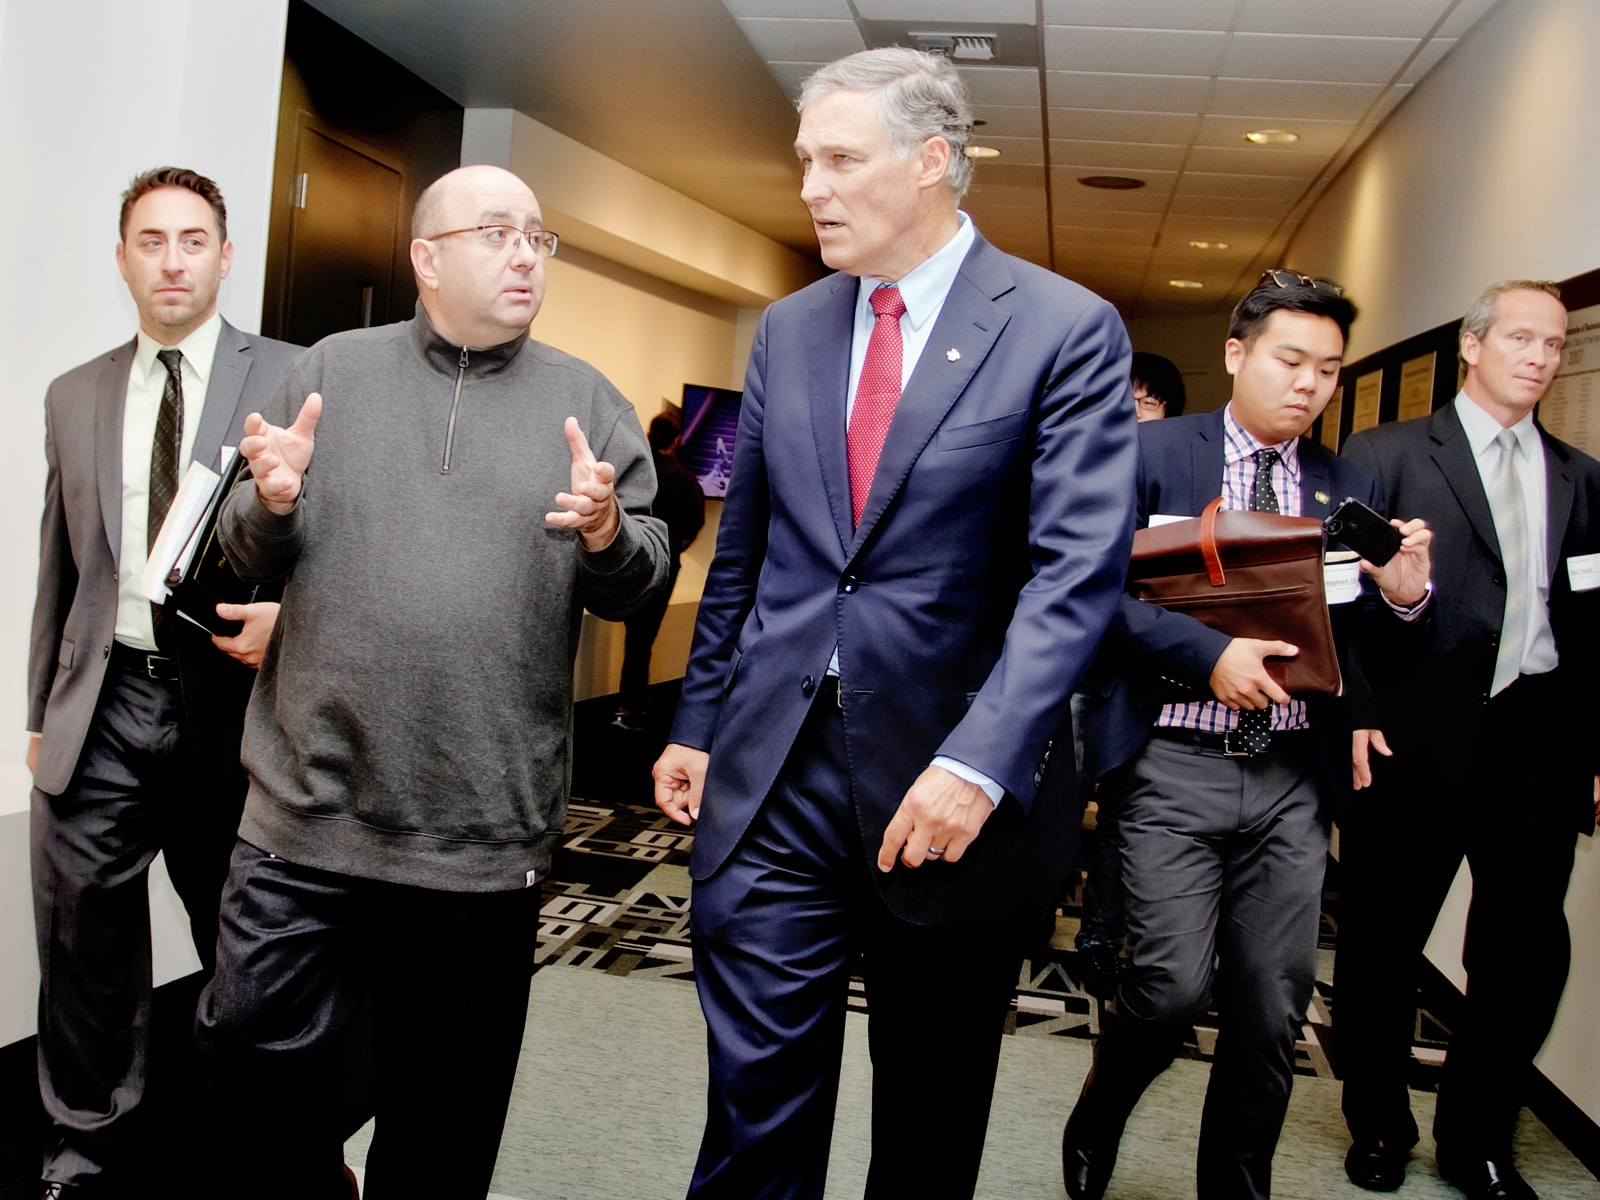 DigiPen founder Claude Comair and Washington Governor Jay Inslee walking down the hall surrounded by staffers